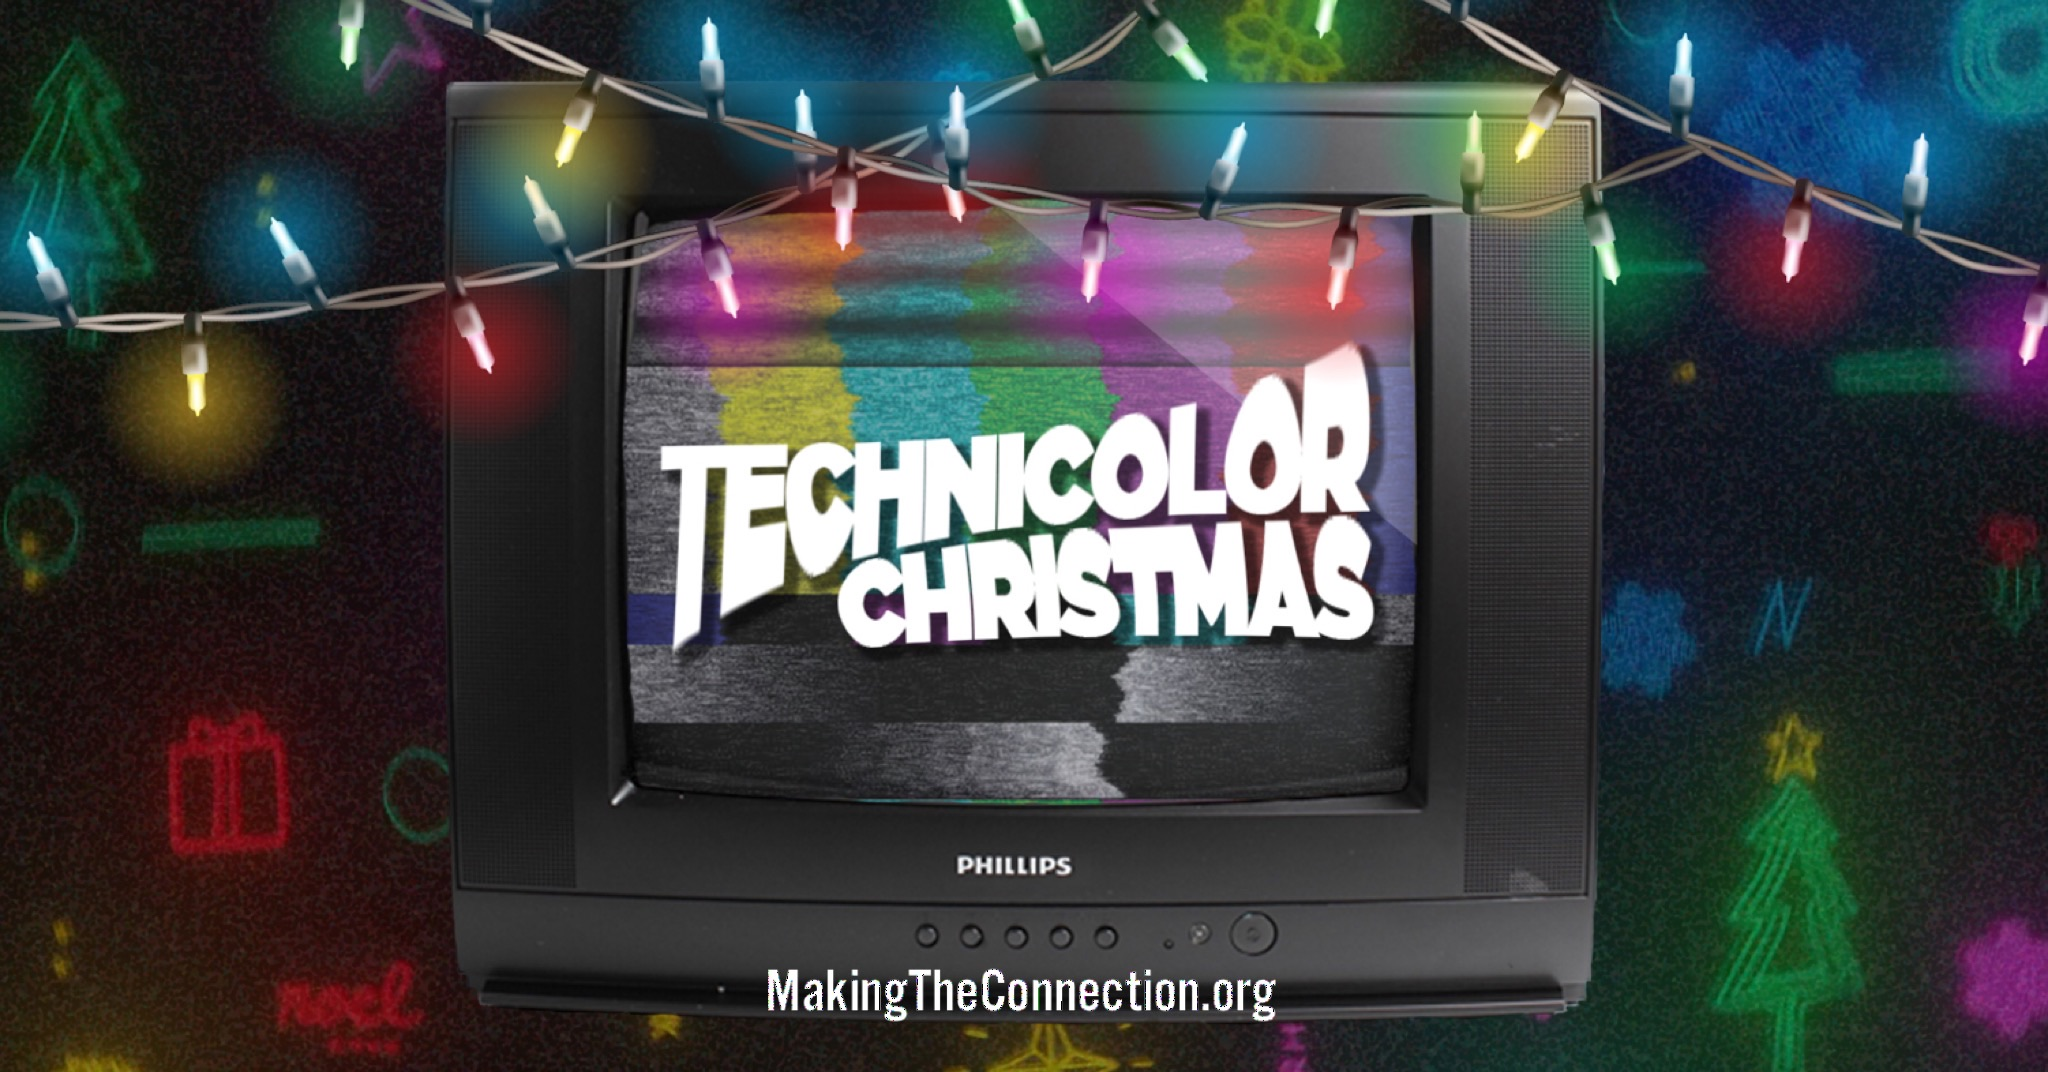 Technicolor Christmas